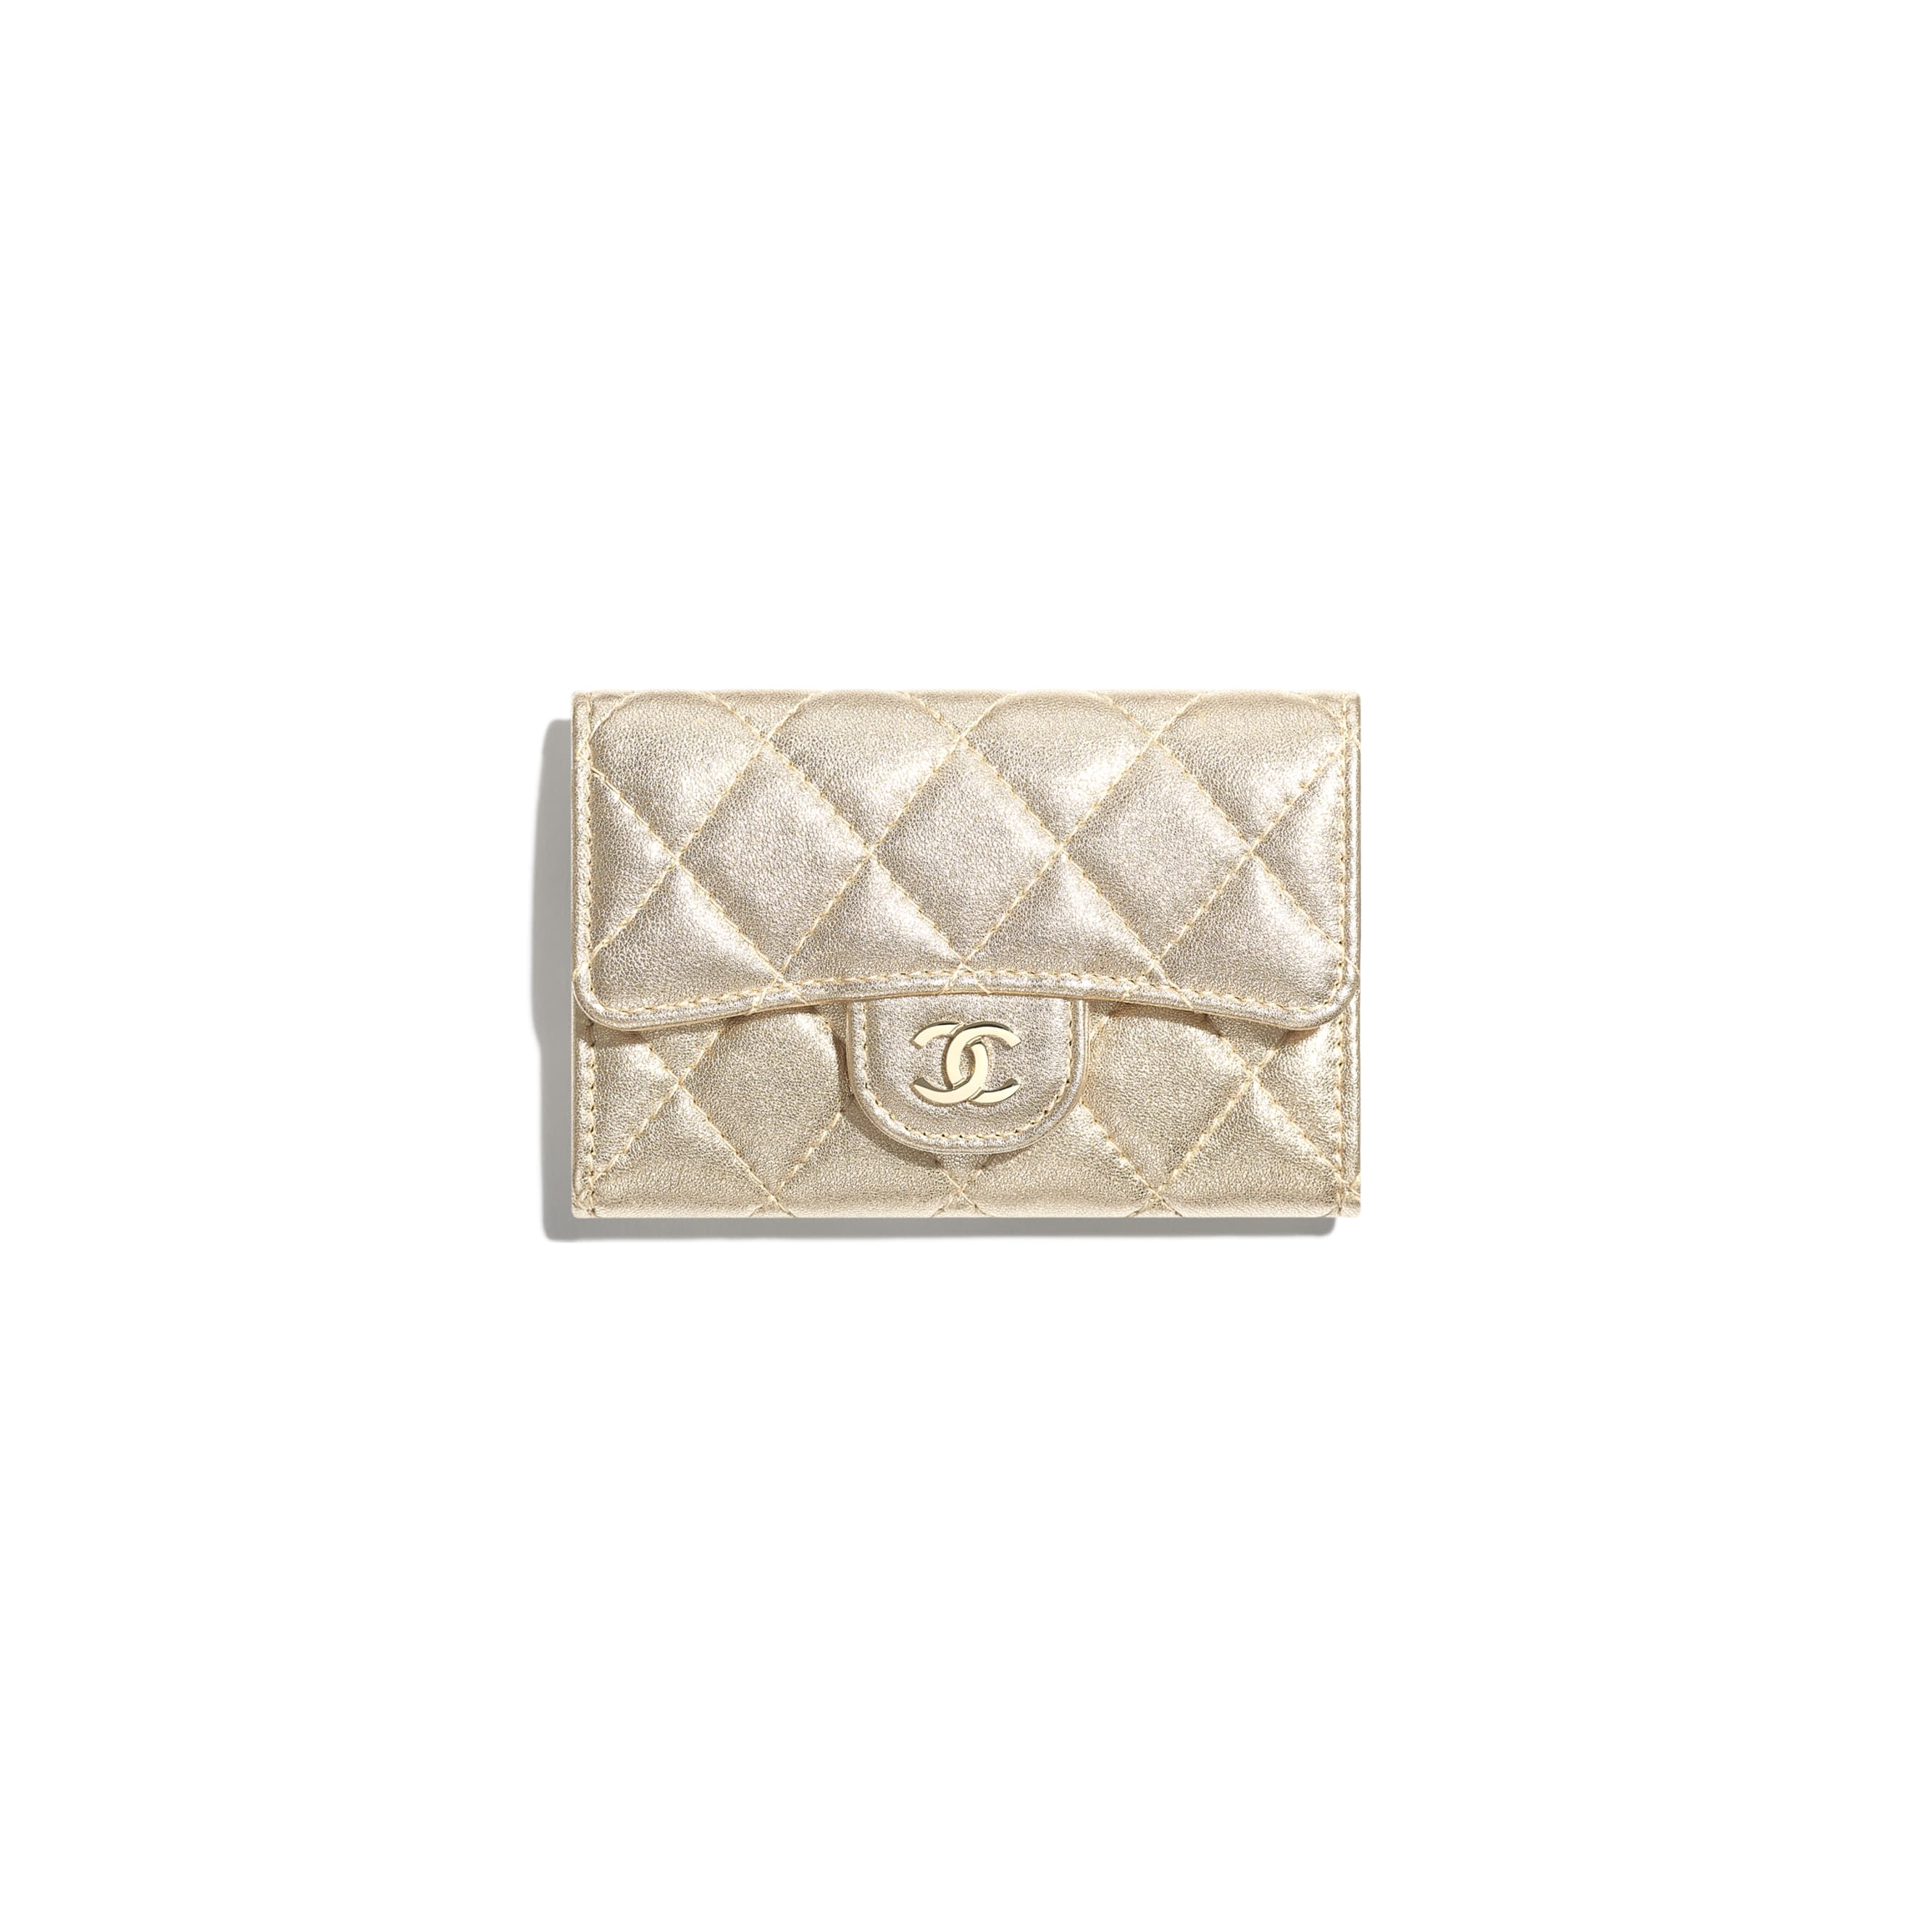 Classic Card Holder - Gold - Metallic Lambskin & Gold Metal - CHANEL - Default view - see standard sized version